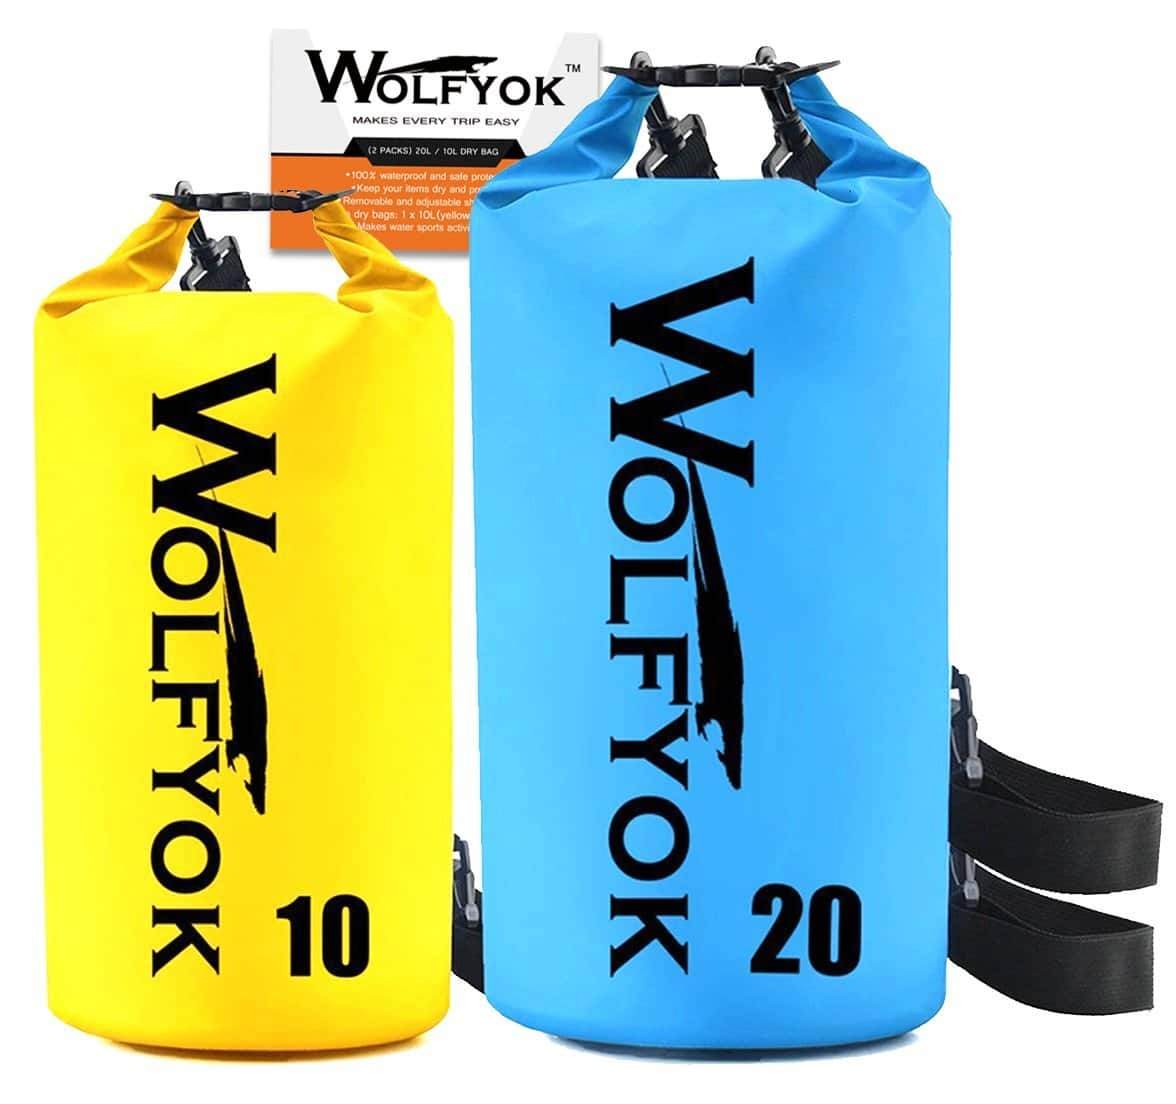 20L / 10L Dry Bag - Wolfyok Roll Top Waterproof Floating Duffle Dry Gear Bag with Adjustable Shoulder Straps [2 pack] - $17.59 AC